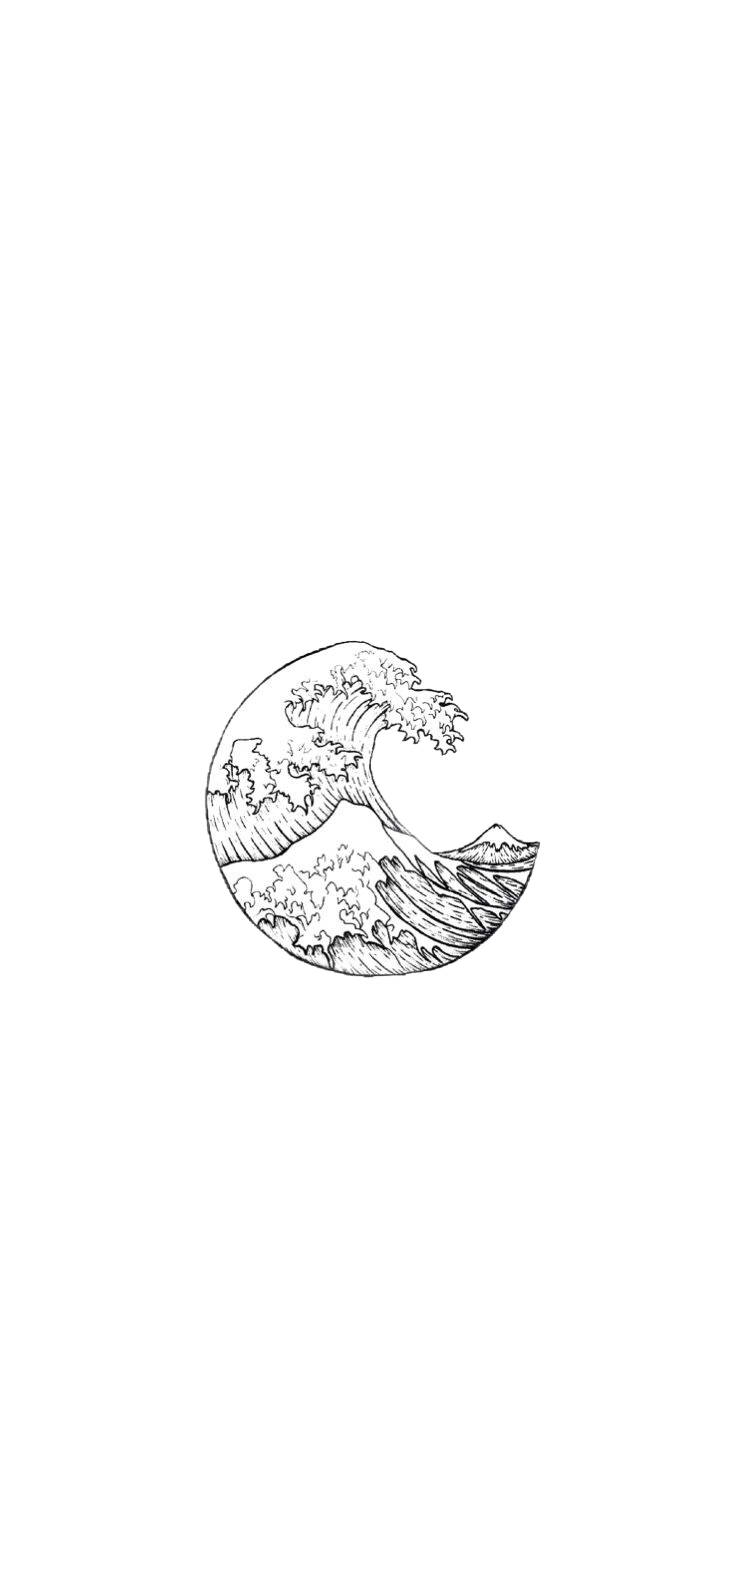 20 Fantastic Ideas Aesthetic Tumblr Wave Drawing